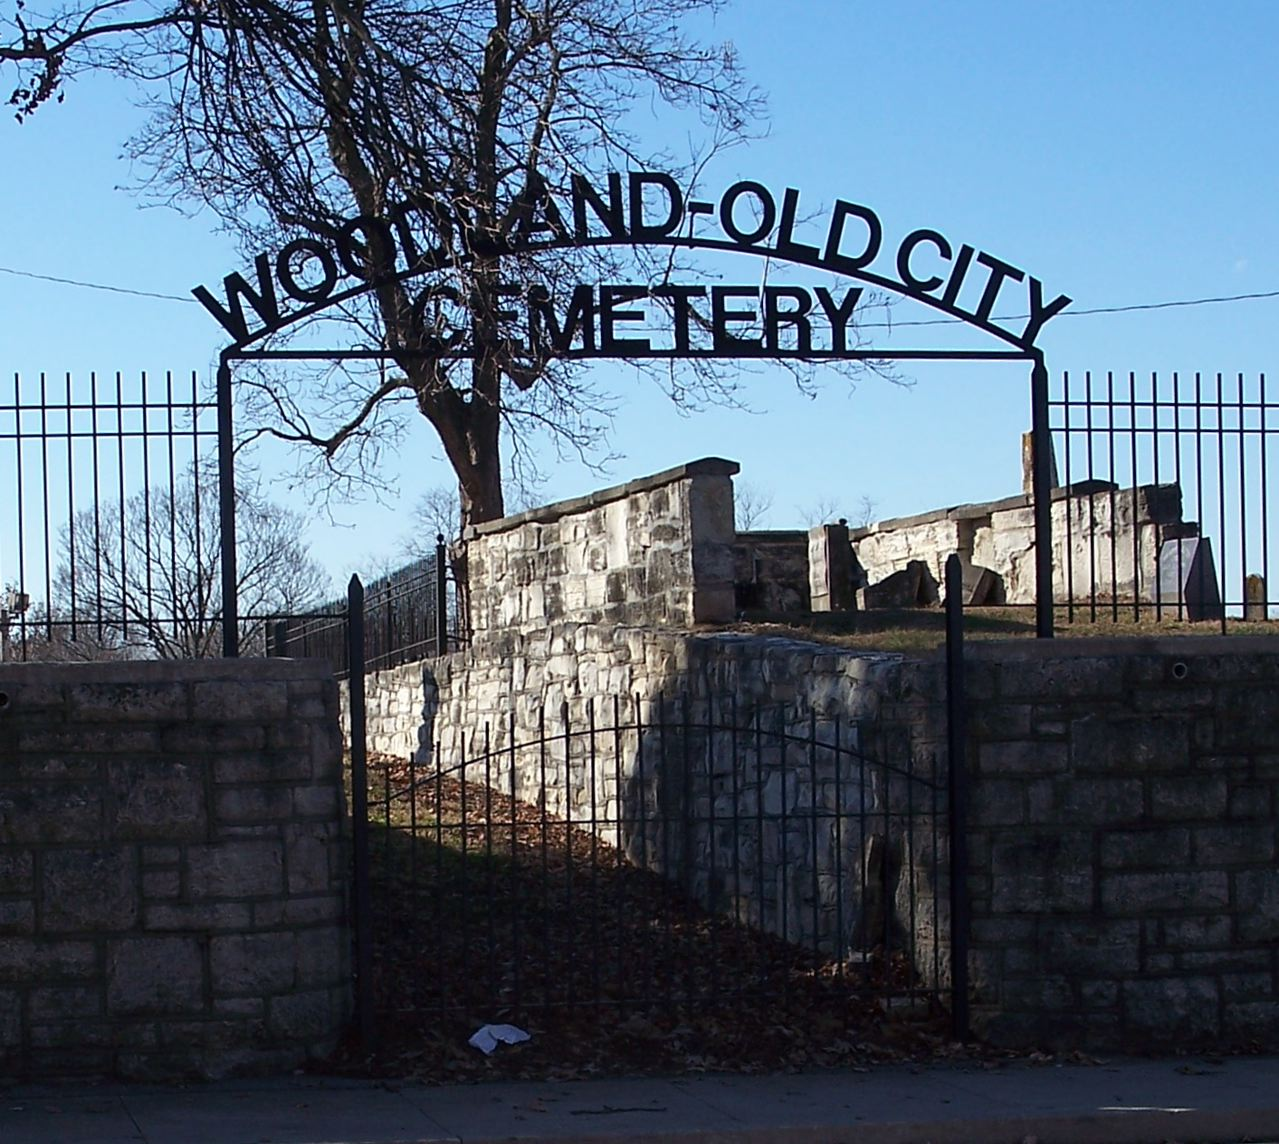 Woodland-Old City Cemetery